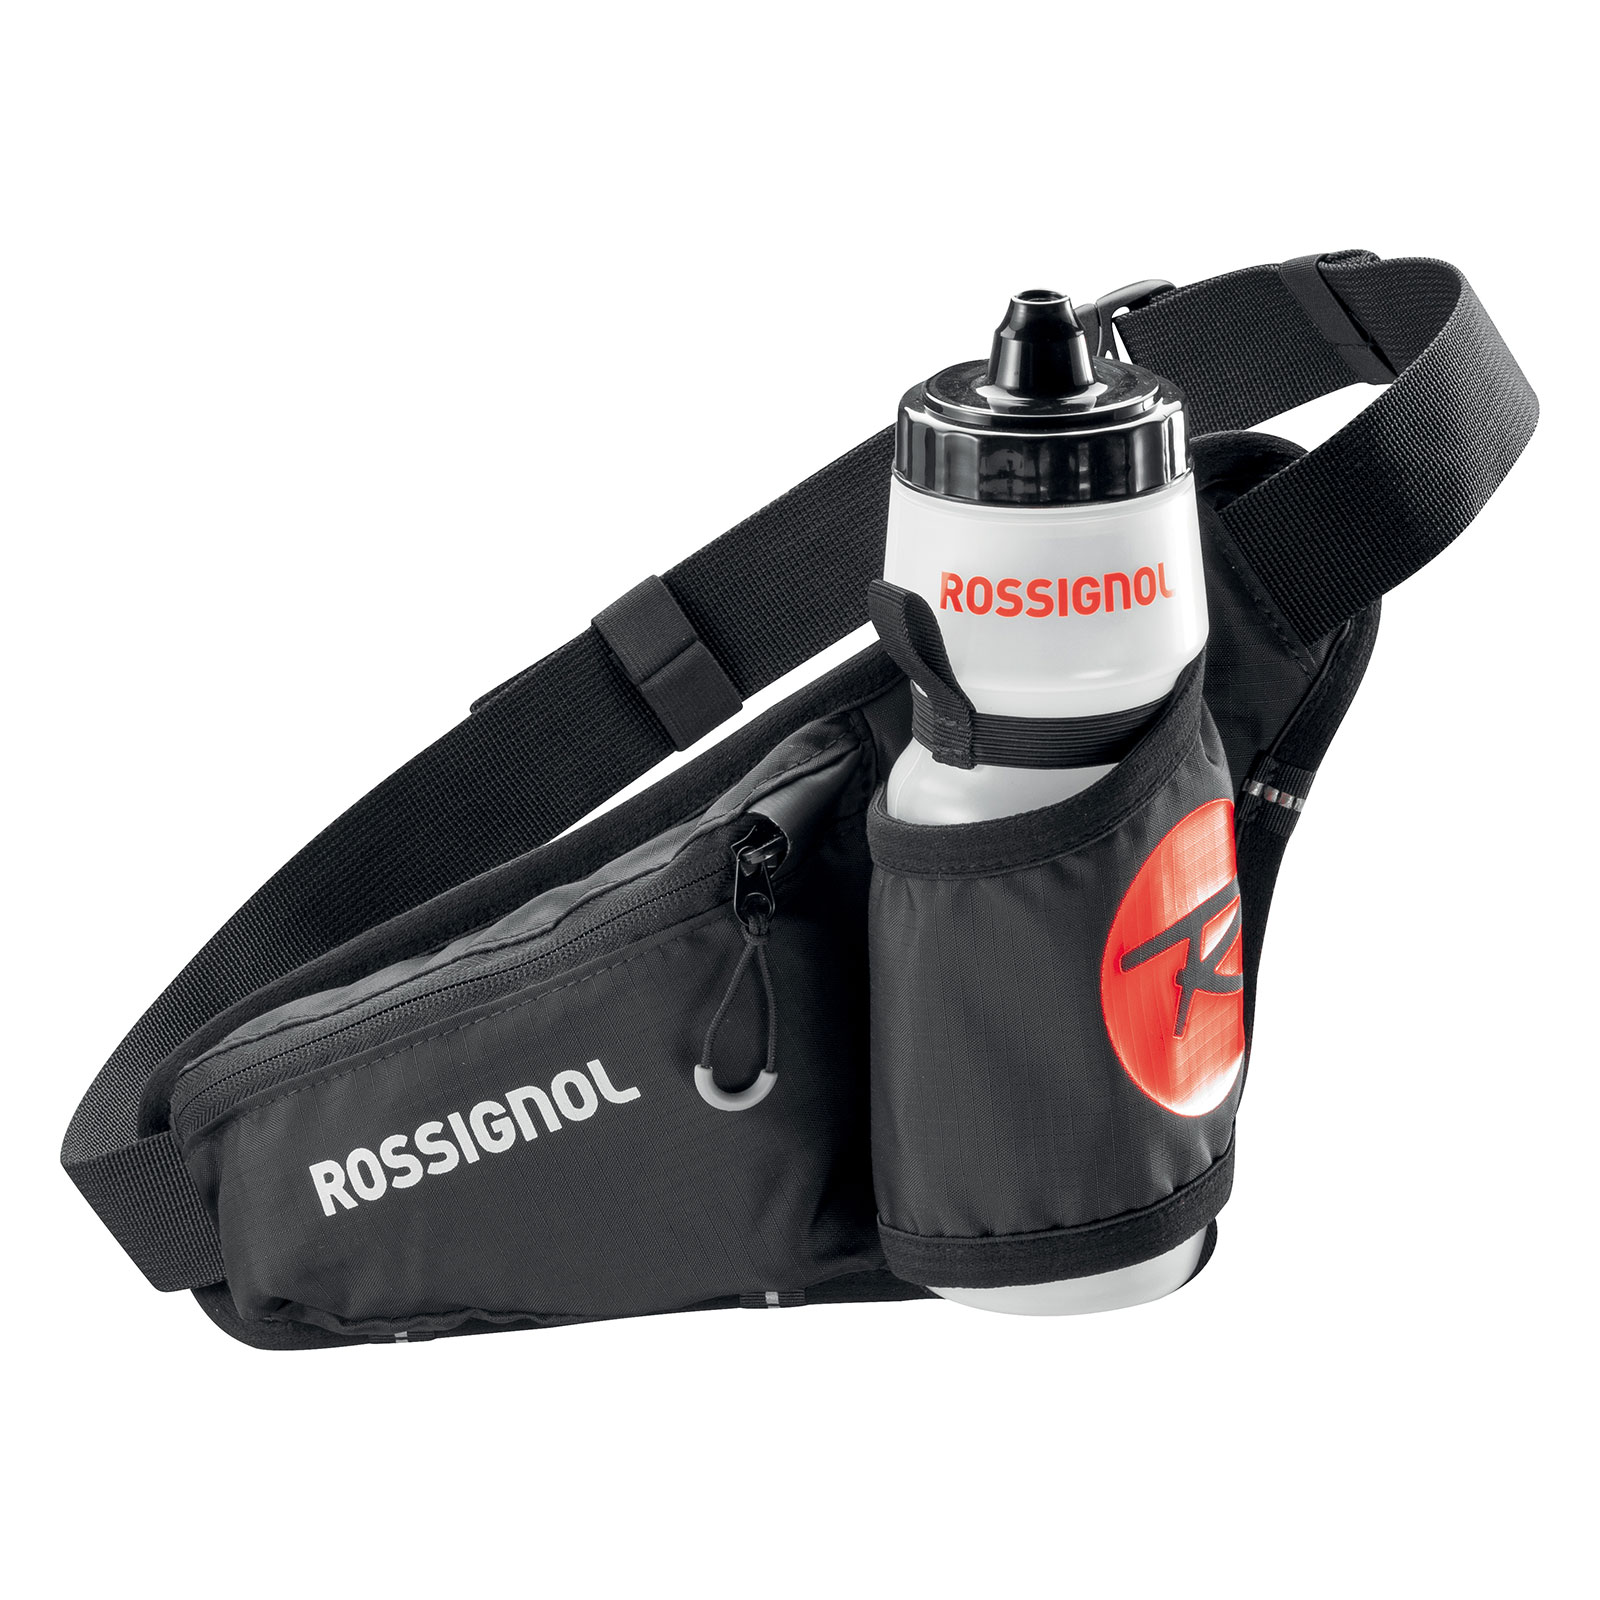 Rossignol Bottle Holder Waistbelt Hydration Pack Skiing Running Hiking Sports by